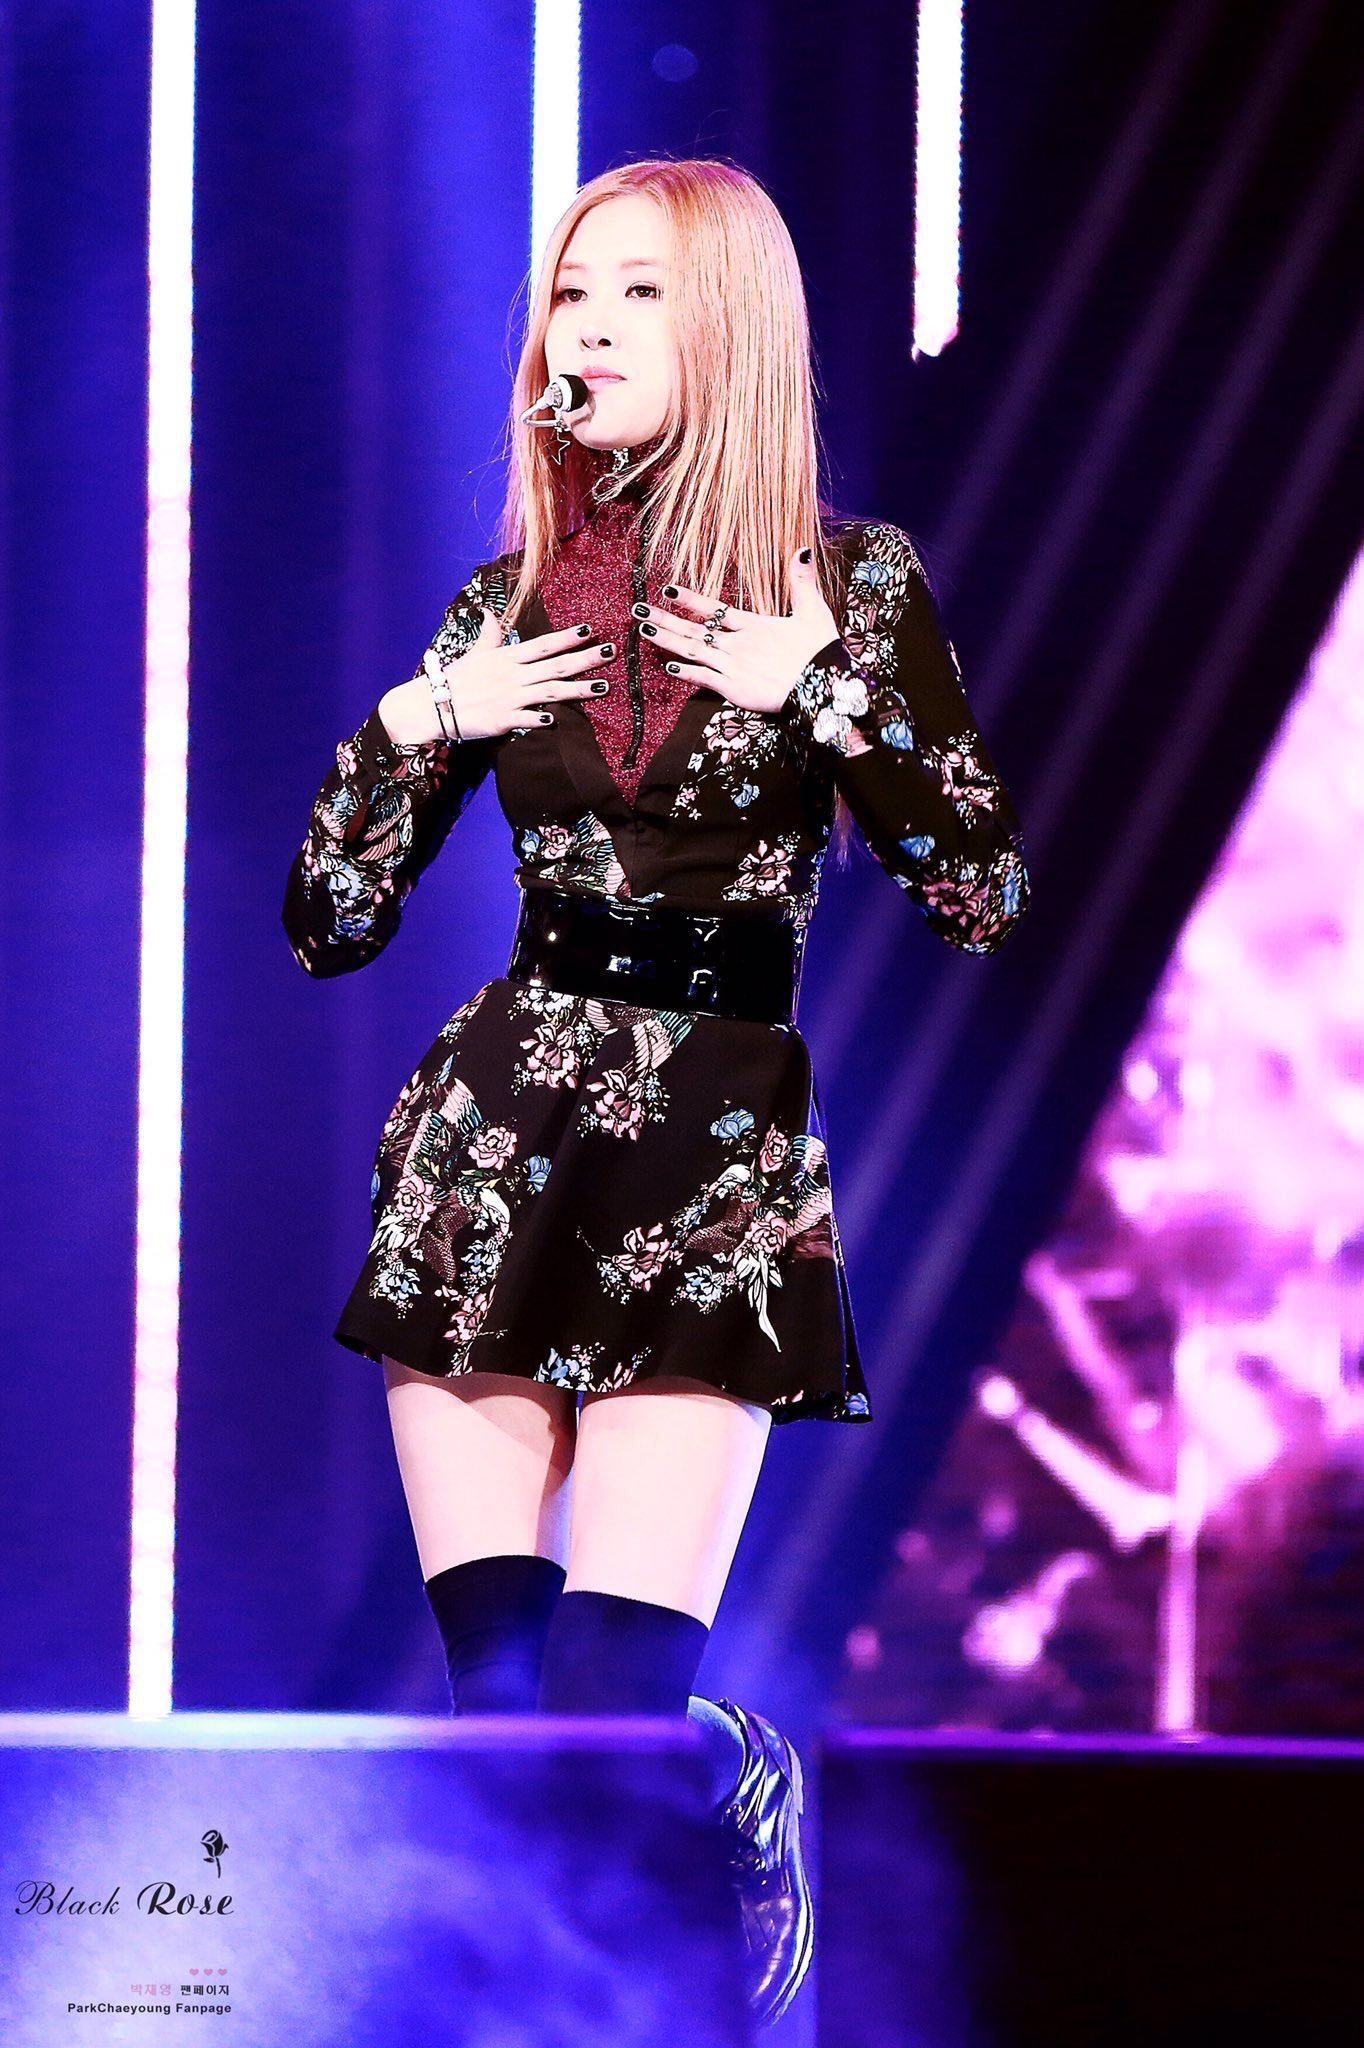 Top 10 Sexiest Outfits Of Blackpink Rose Koreaboo K S T Y L E